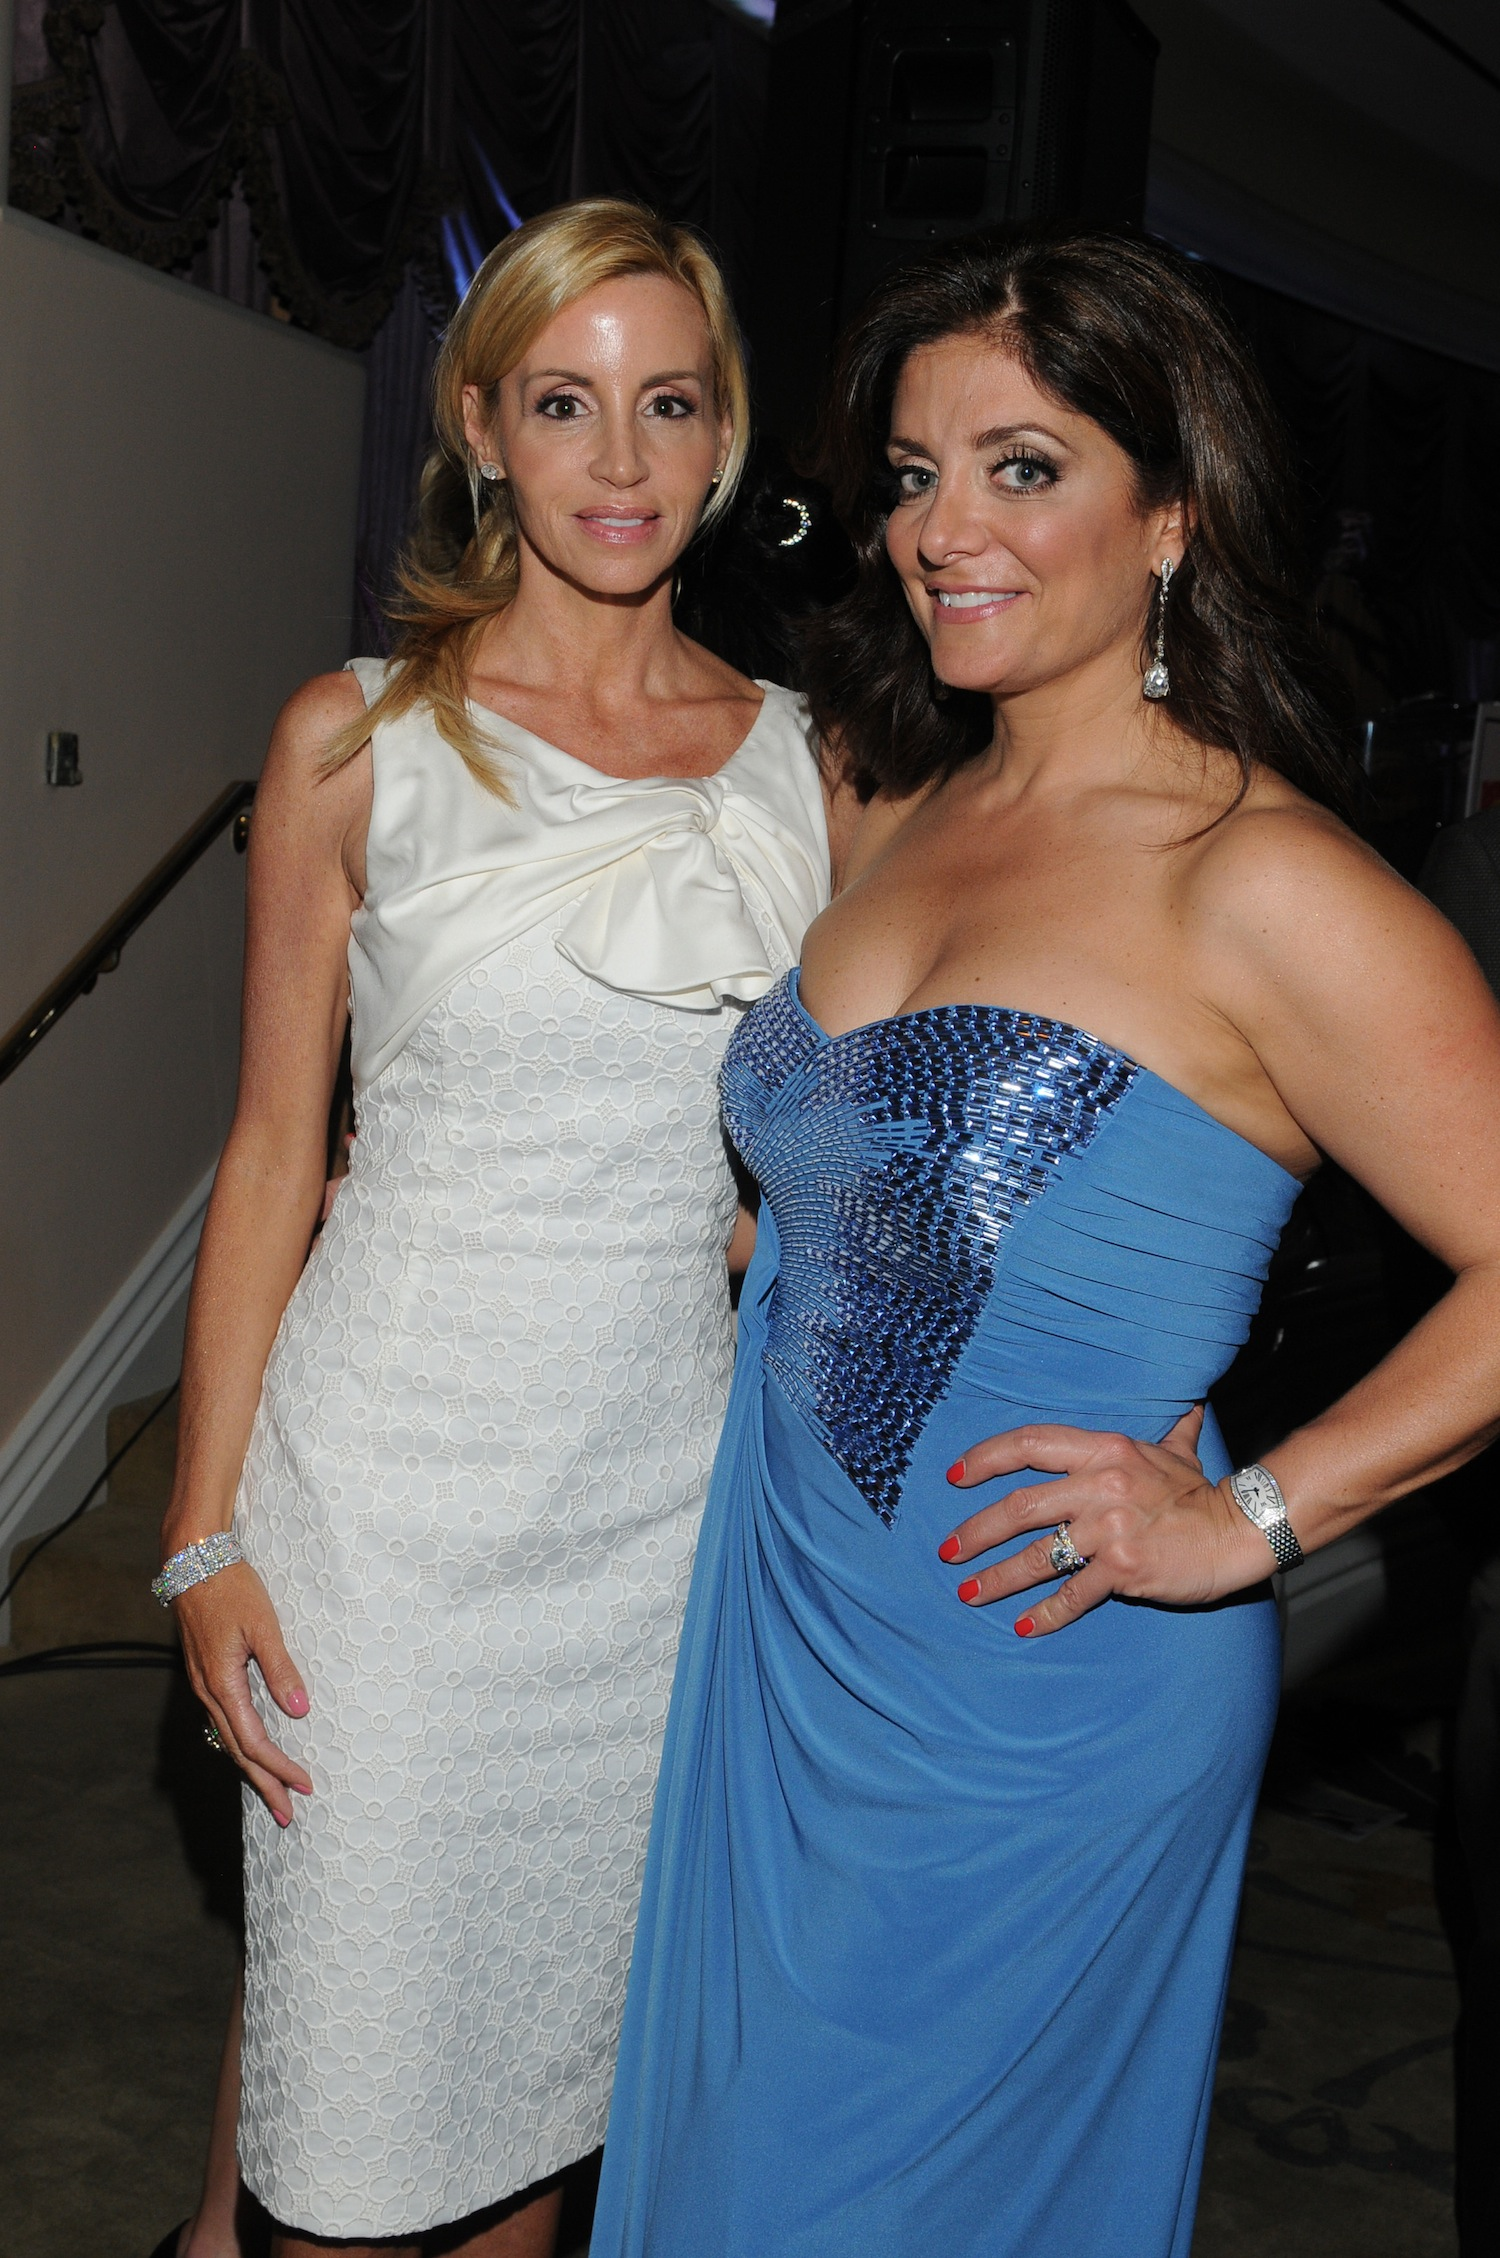 Camille Grammer and Kathy Wakile